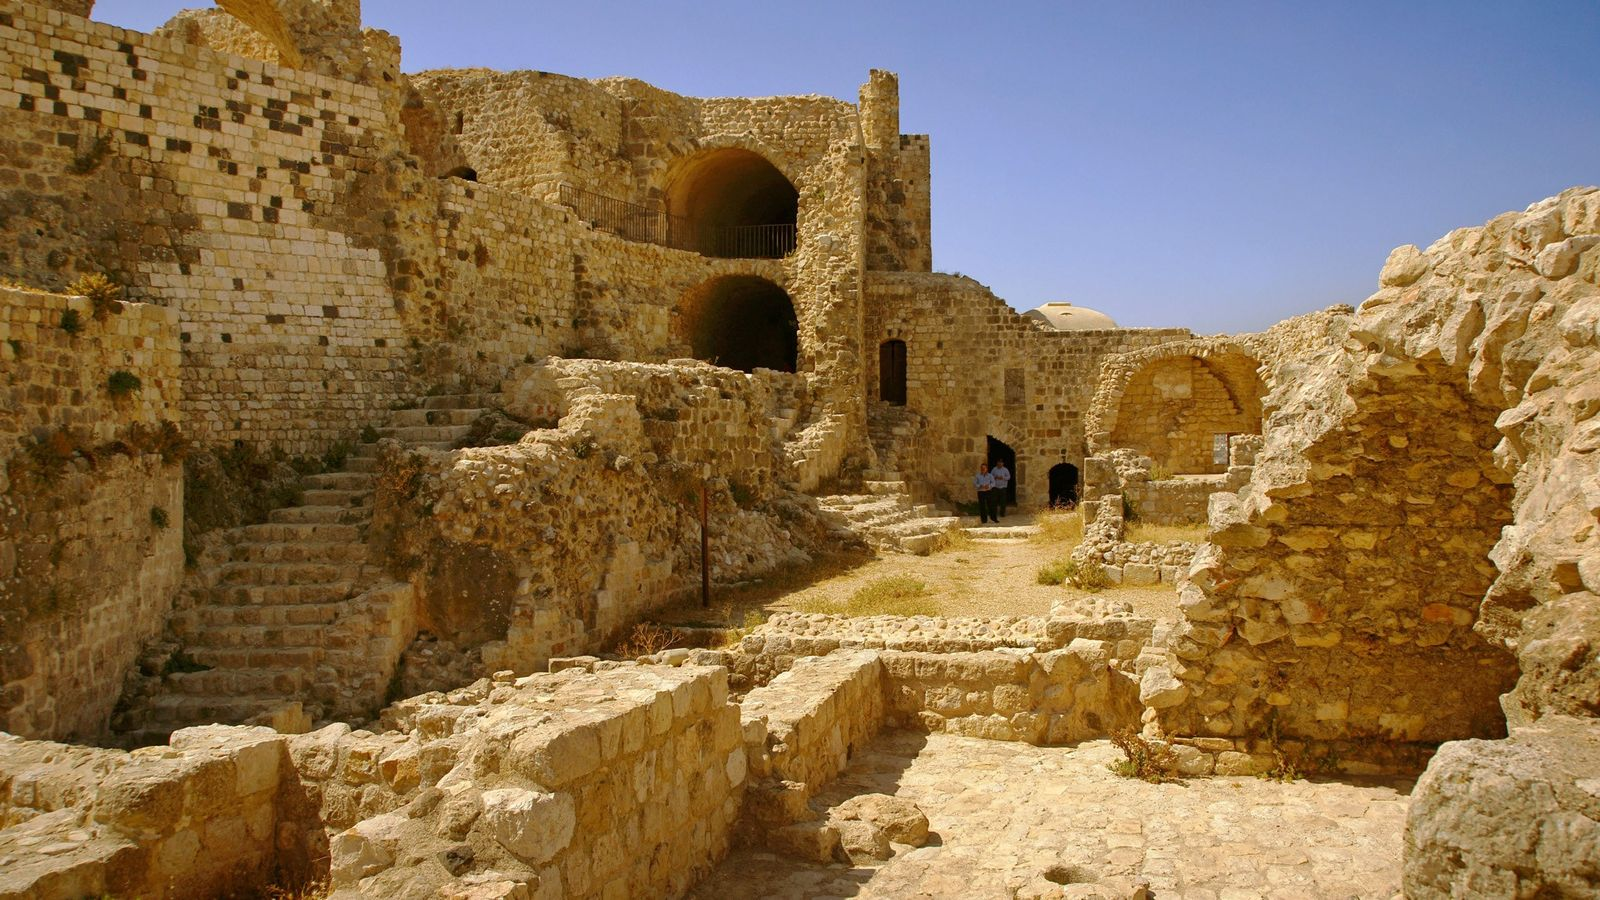 The ruins of the Nizari fortress of Masayf in Syria. The Nizari Ismailis, often referred by ...